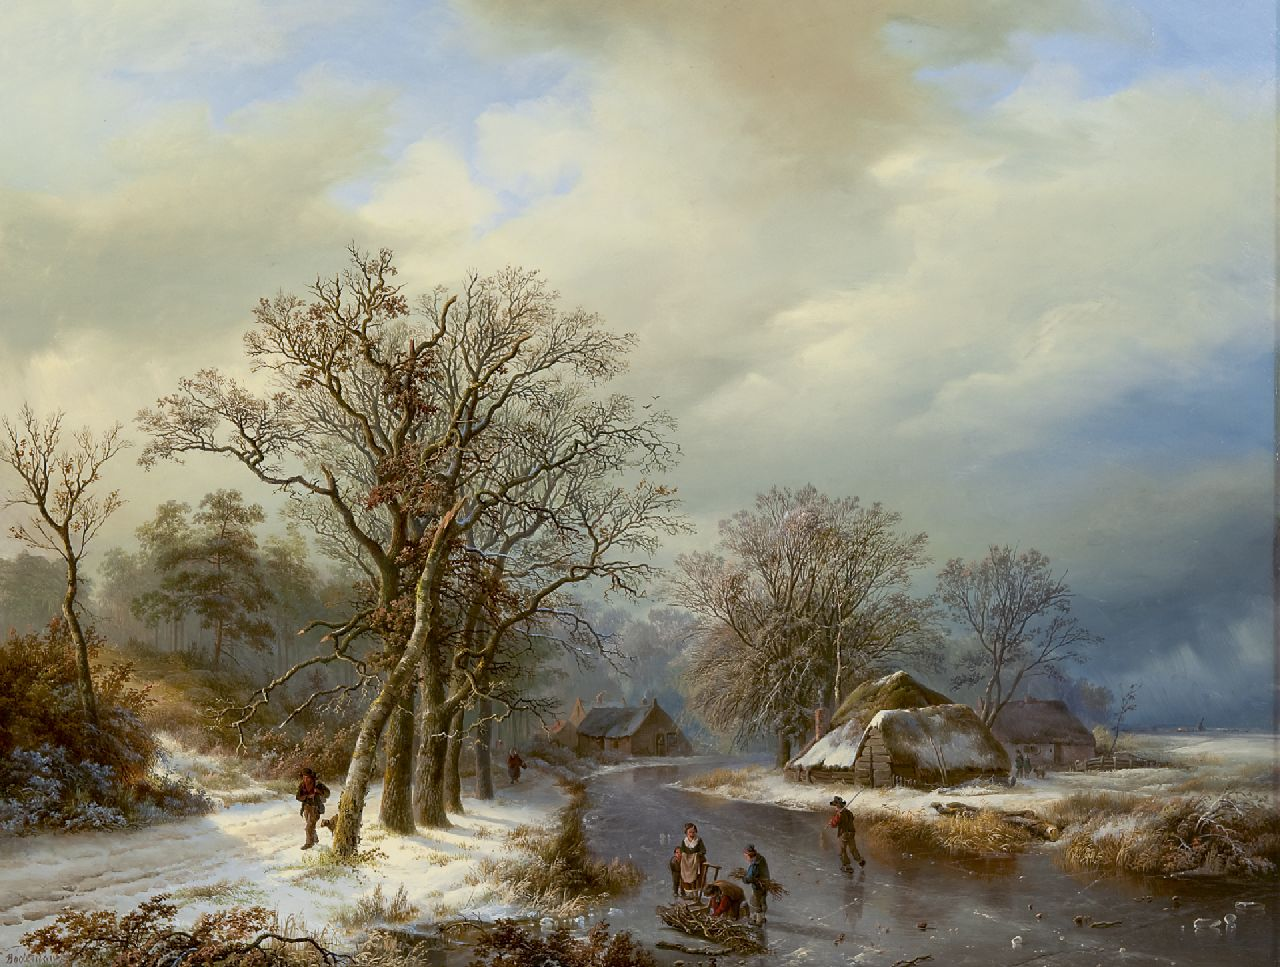 Bodeman W.  | Willem Bodeman, A winter landscape with skaters and farmers gathering wood, oil on panel 58.0 x 75.4 cm, signed l.l.